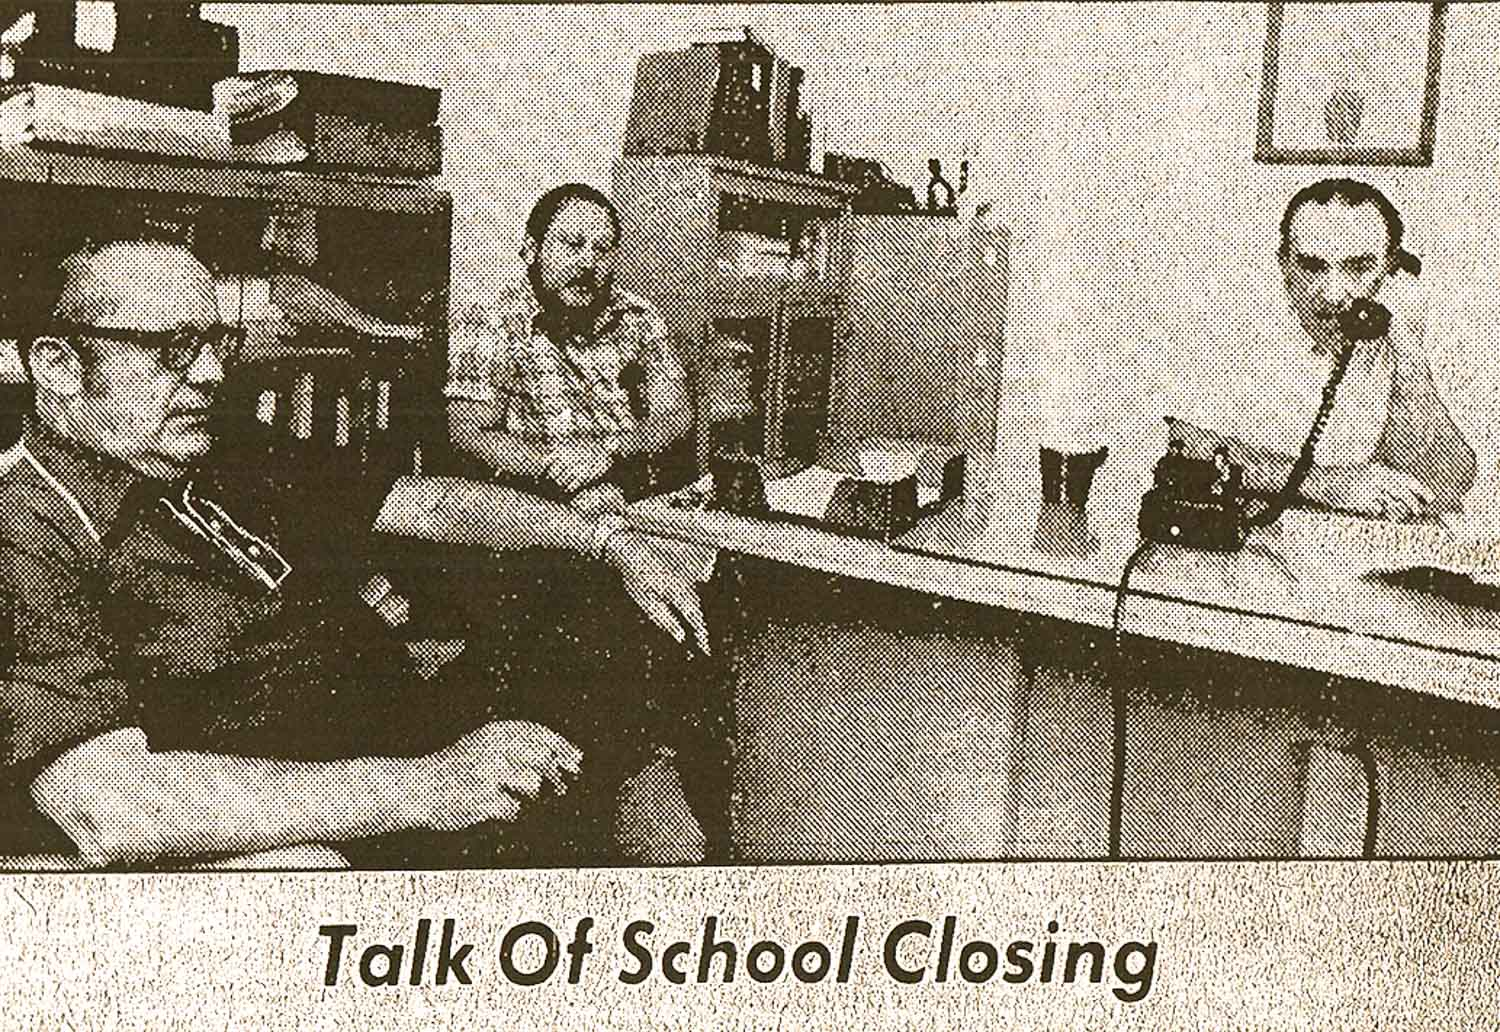 The Training School's final superintendent, George Dolecal (right), fields questions from reporters about the School's possible closure. Source: Hudson  Register-Star , August 11, 1975.